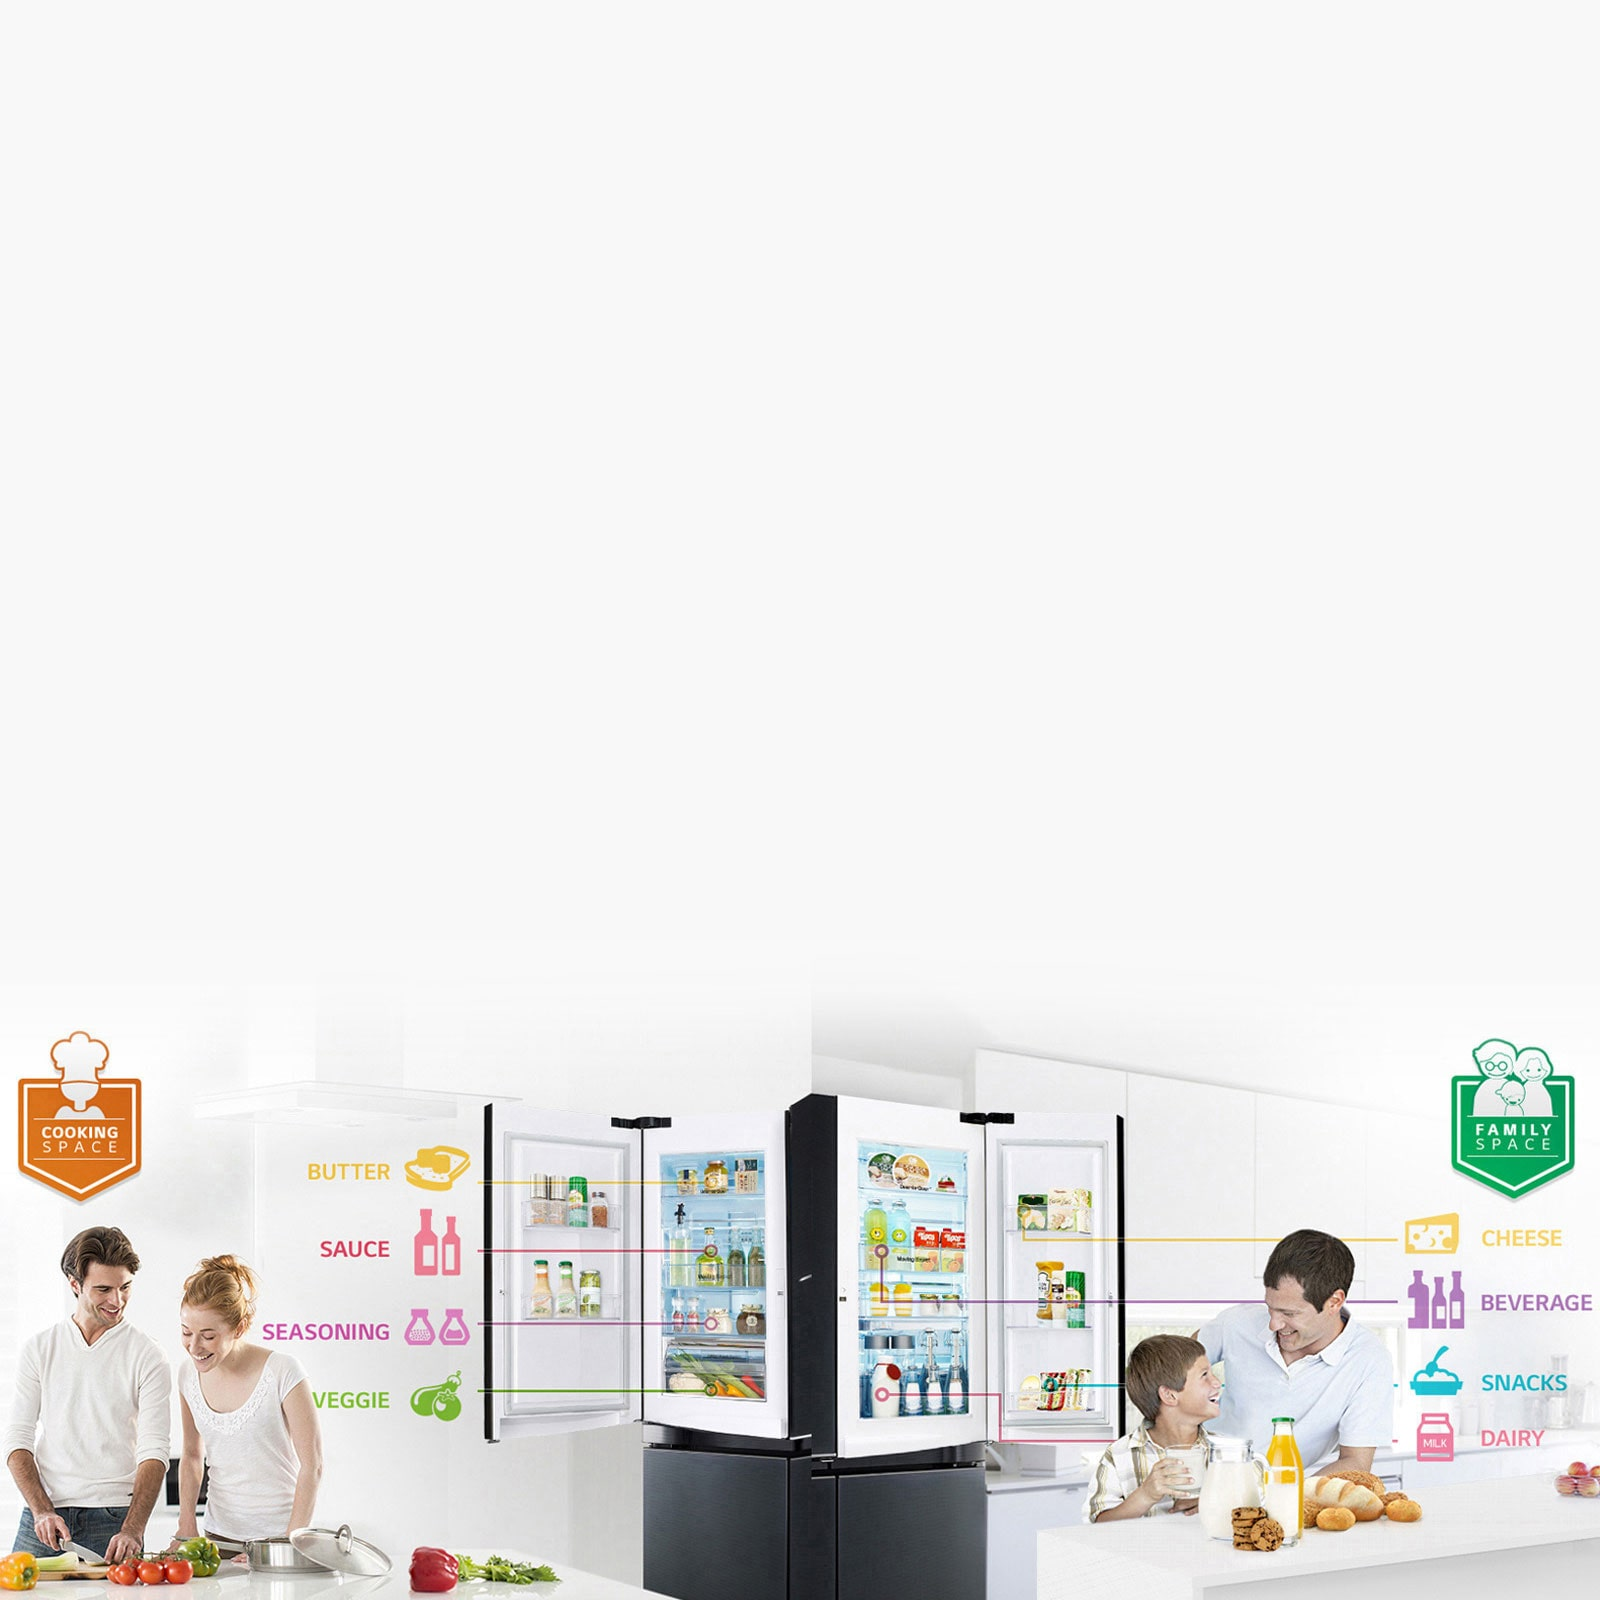 Kitchen Appliances - Refrigerator, Microwave & More | LG India